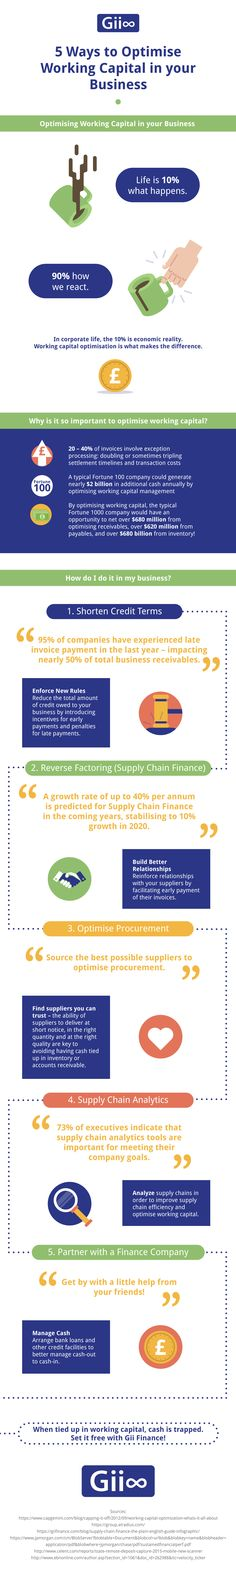 5 Ideas to Optimise Working Capital #infographic #Business #Finance